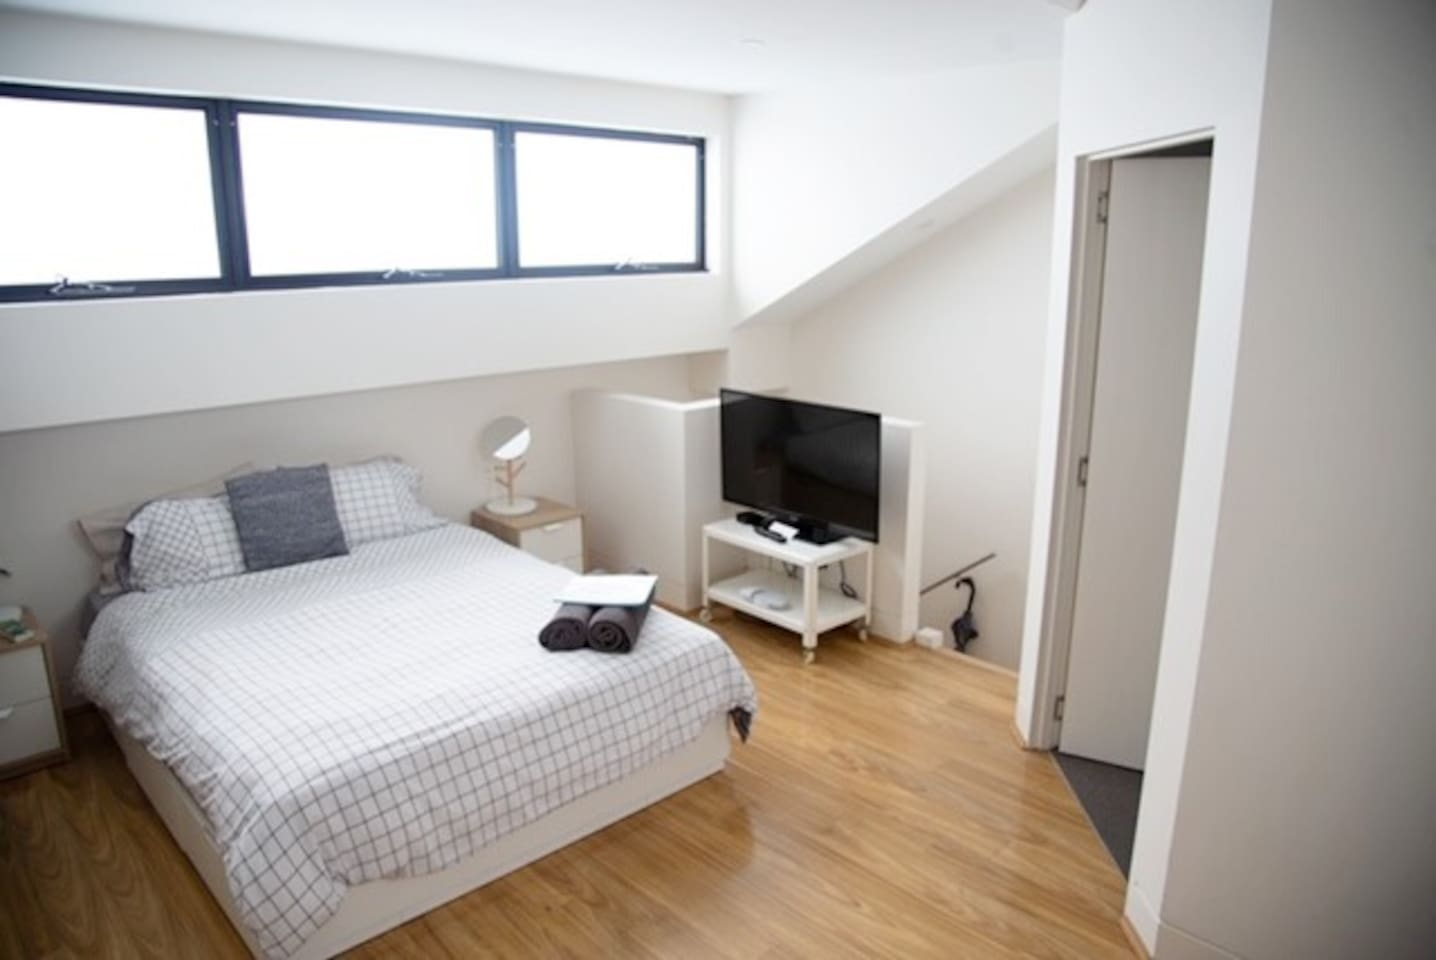 Spacious studio above garage. Private bathroom and entry way. Full kitchen and Tv with Netflix.